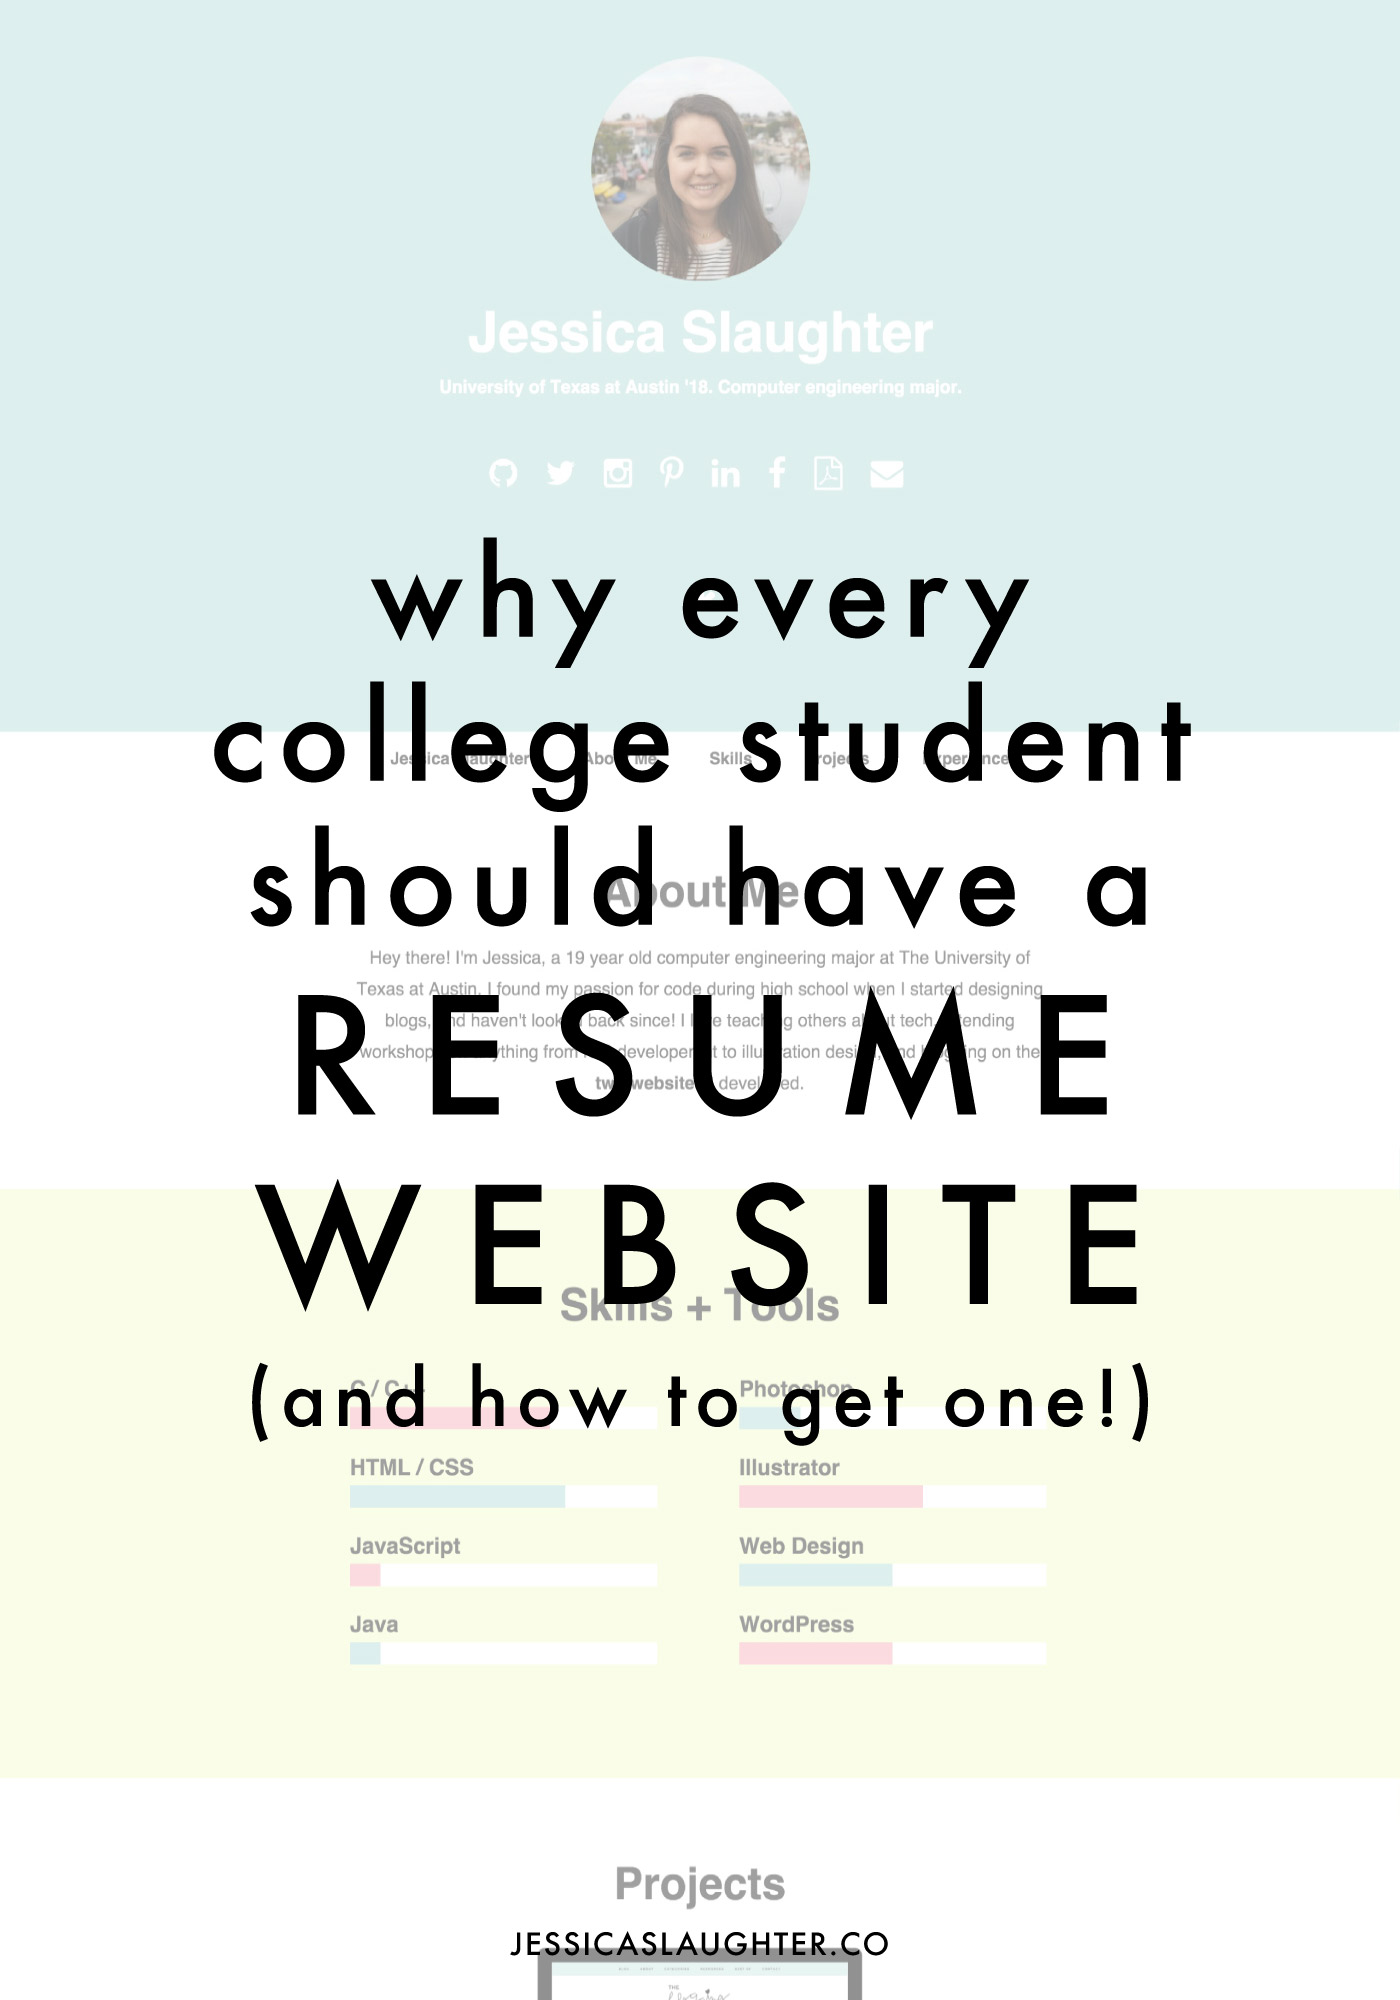 Why Every College Student Should Have A Resume Website - Jessica ...